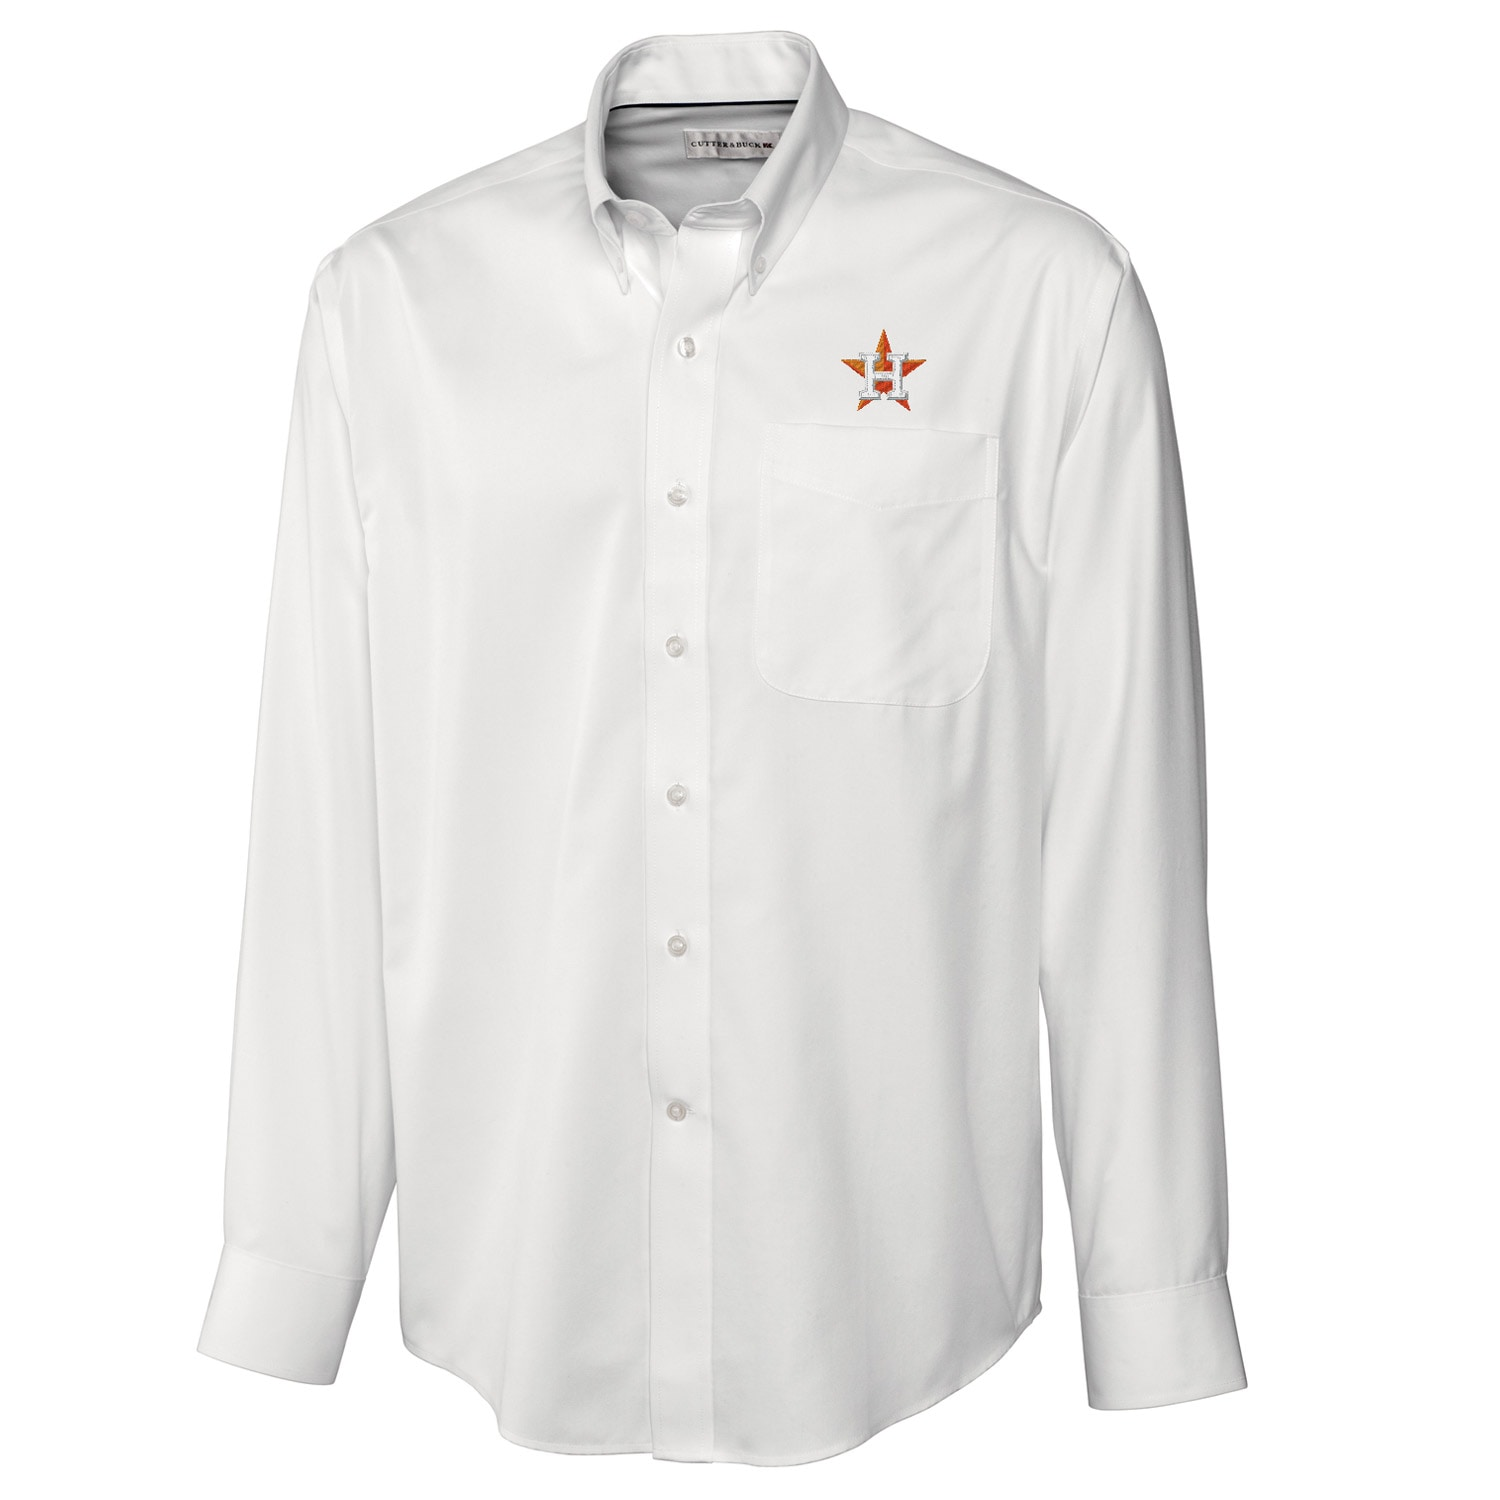 Houston Astros Cutter & Buck Big & Tall Epic Easy Care Fine Twill Long Sleeve Shirt - White